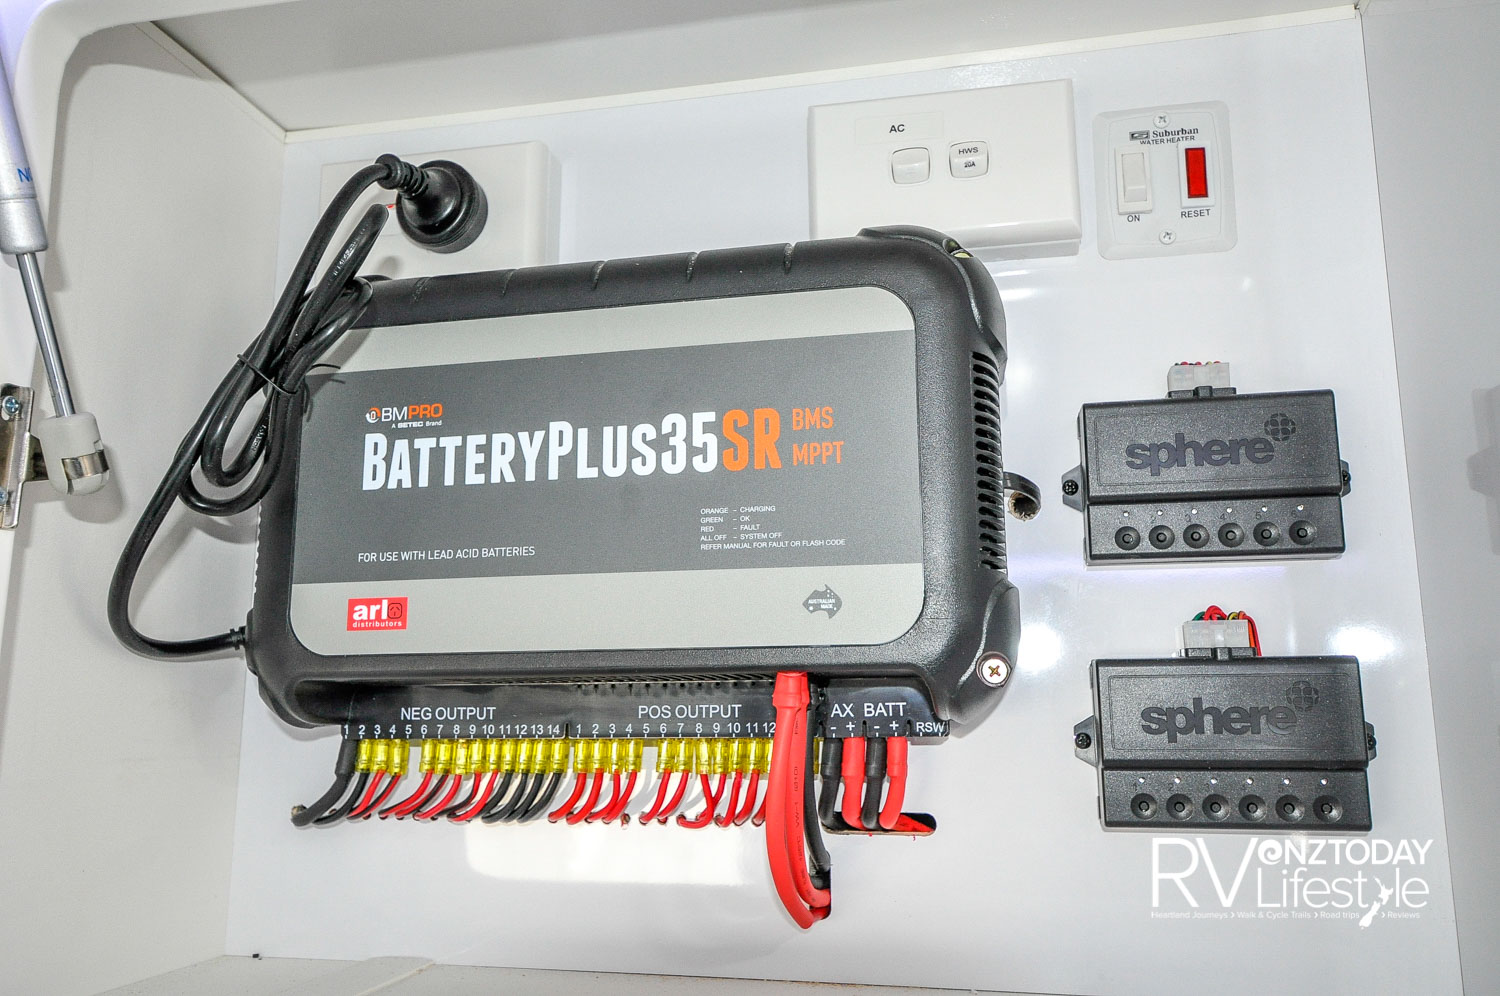 Battery controller system, the BMPRO